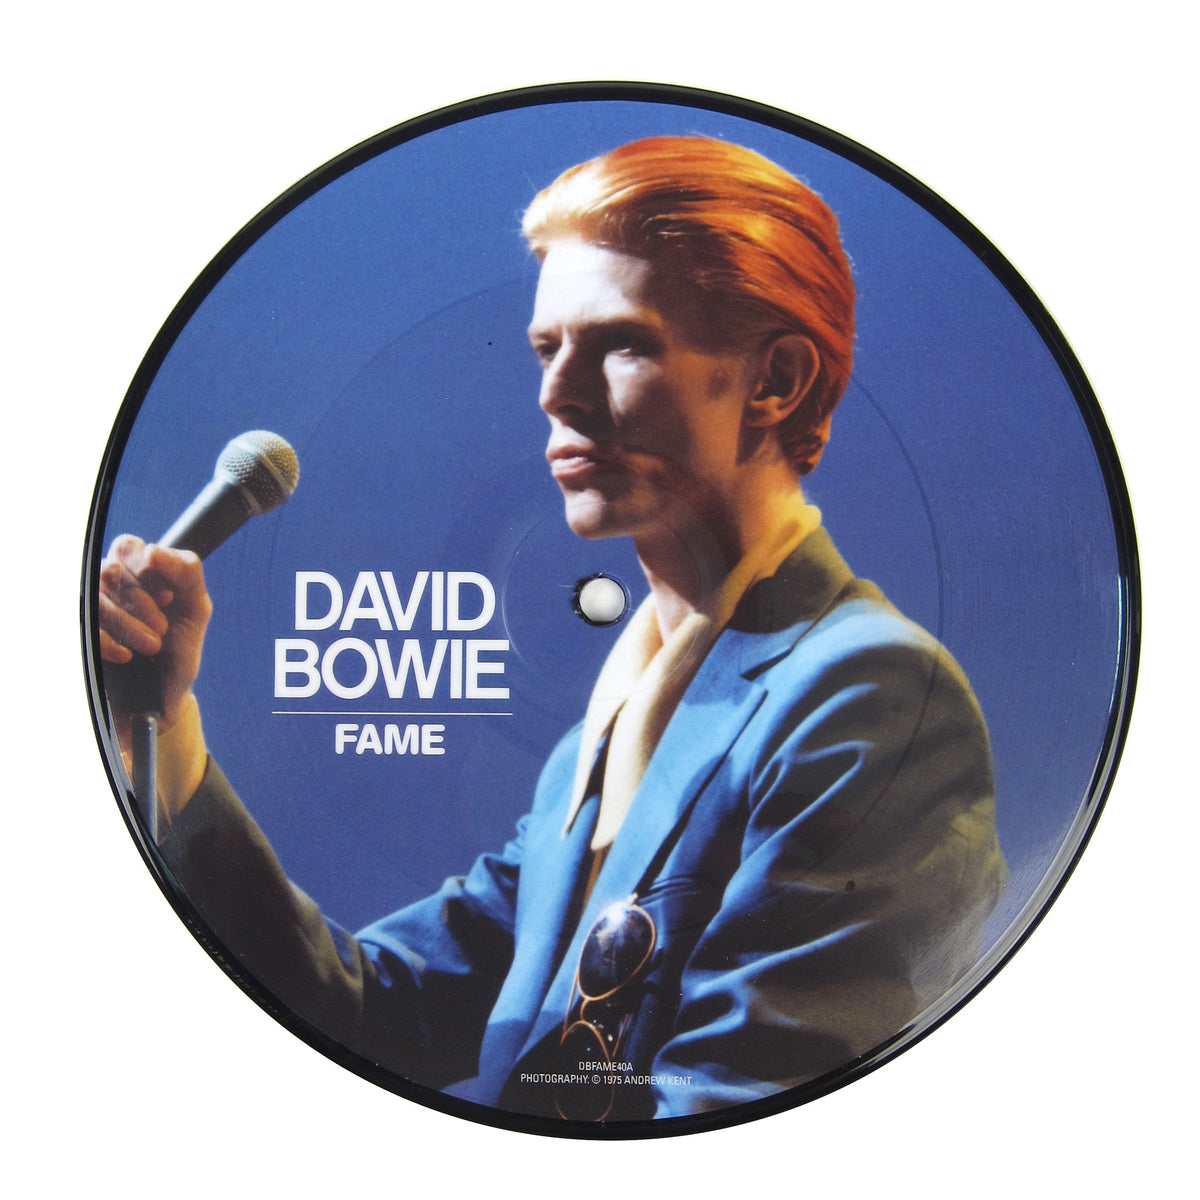 David Bowie: Fame 40th Anniversary (Pic Disc) Vinyl 7""